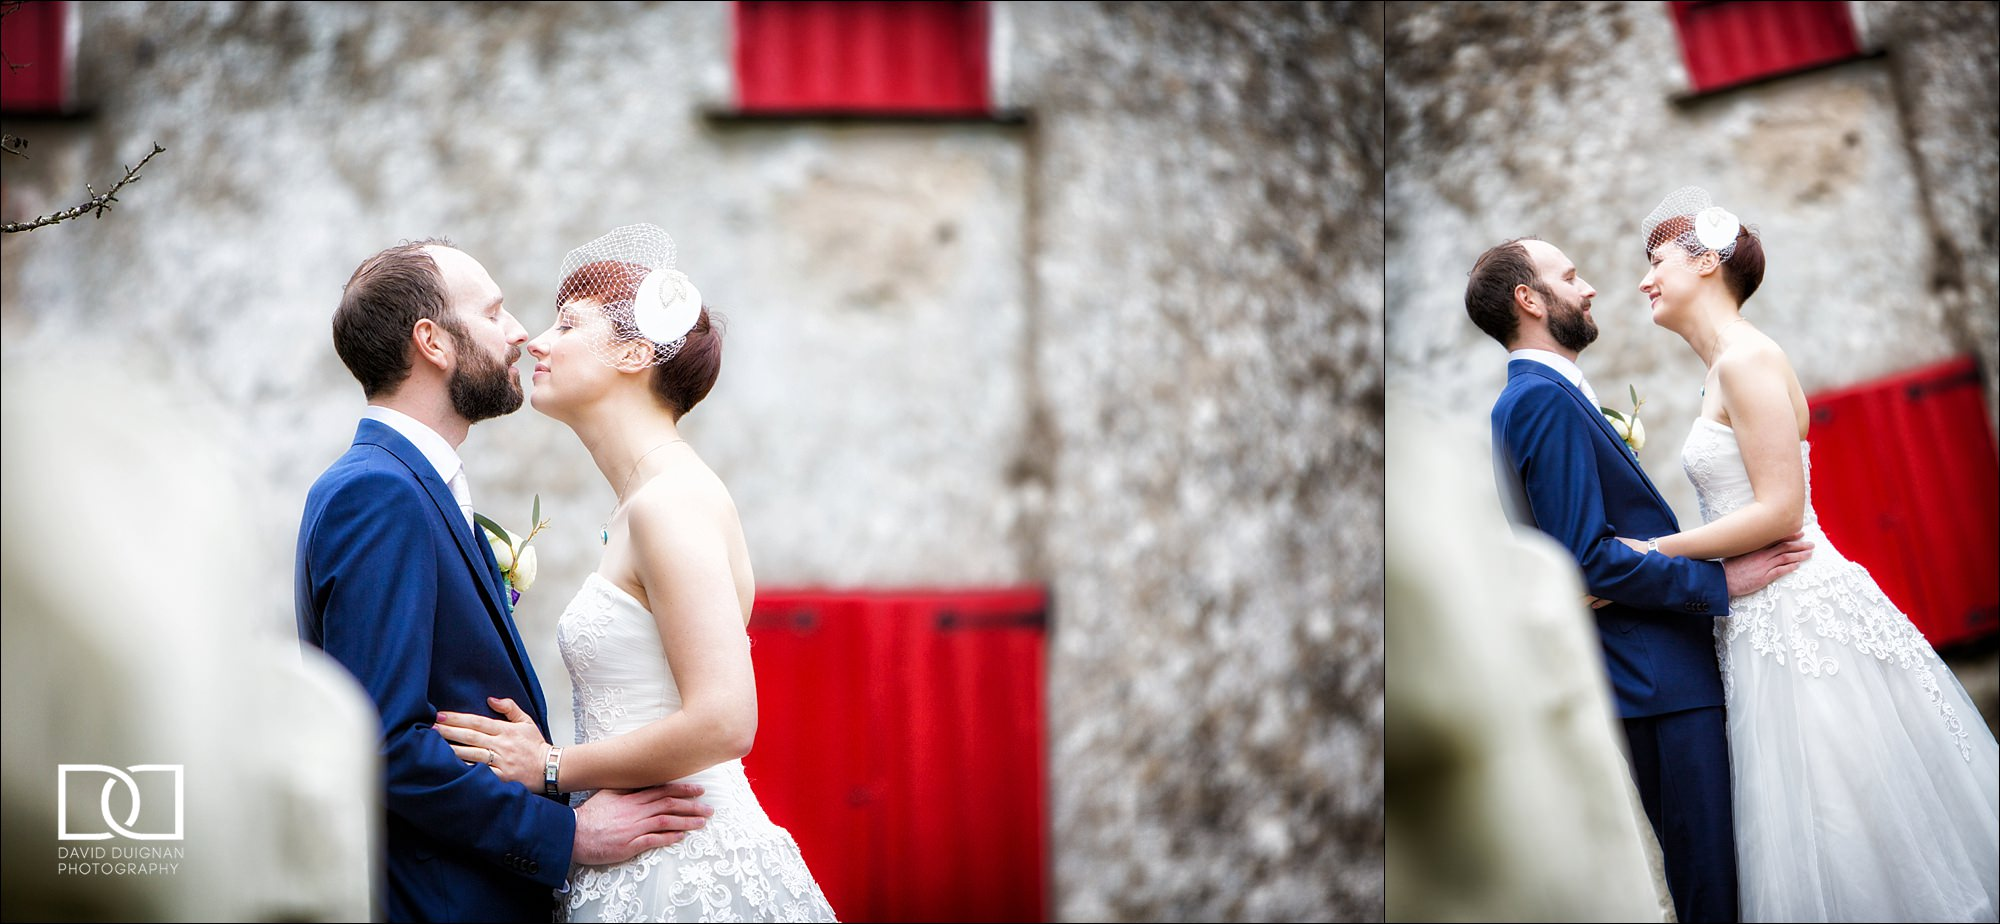 dublin wedding photographer david duignan photography horetown house wedding wexford Ireland 0017